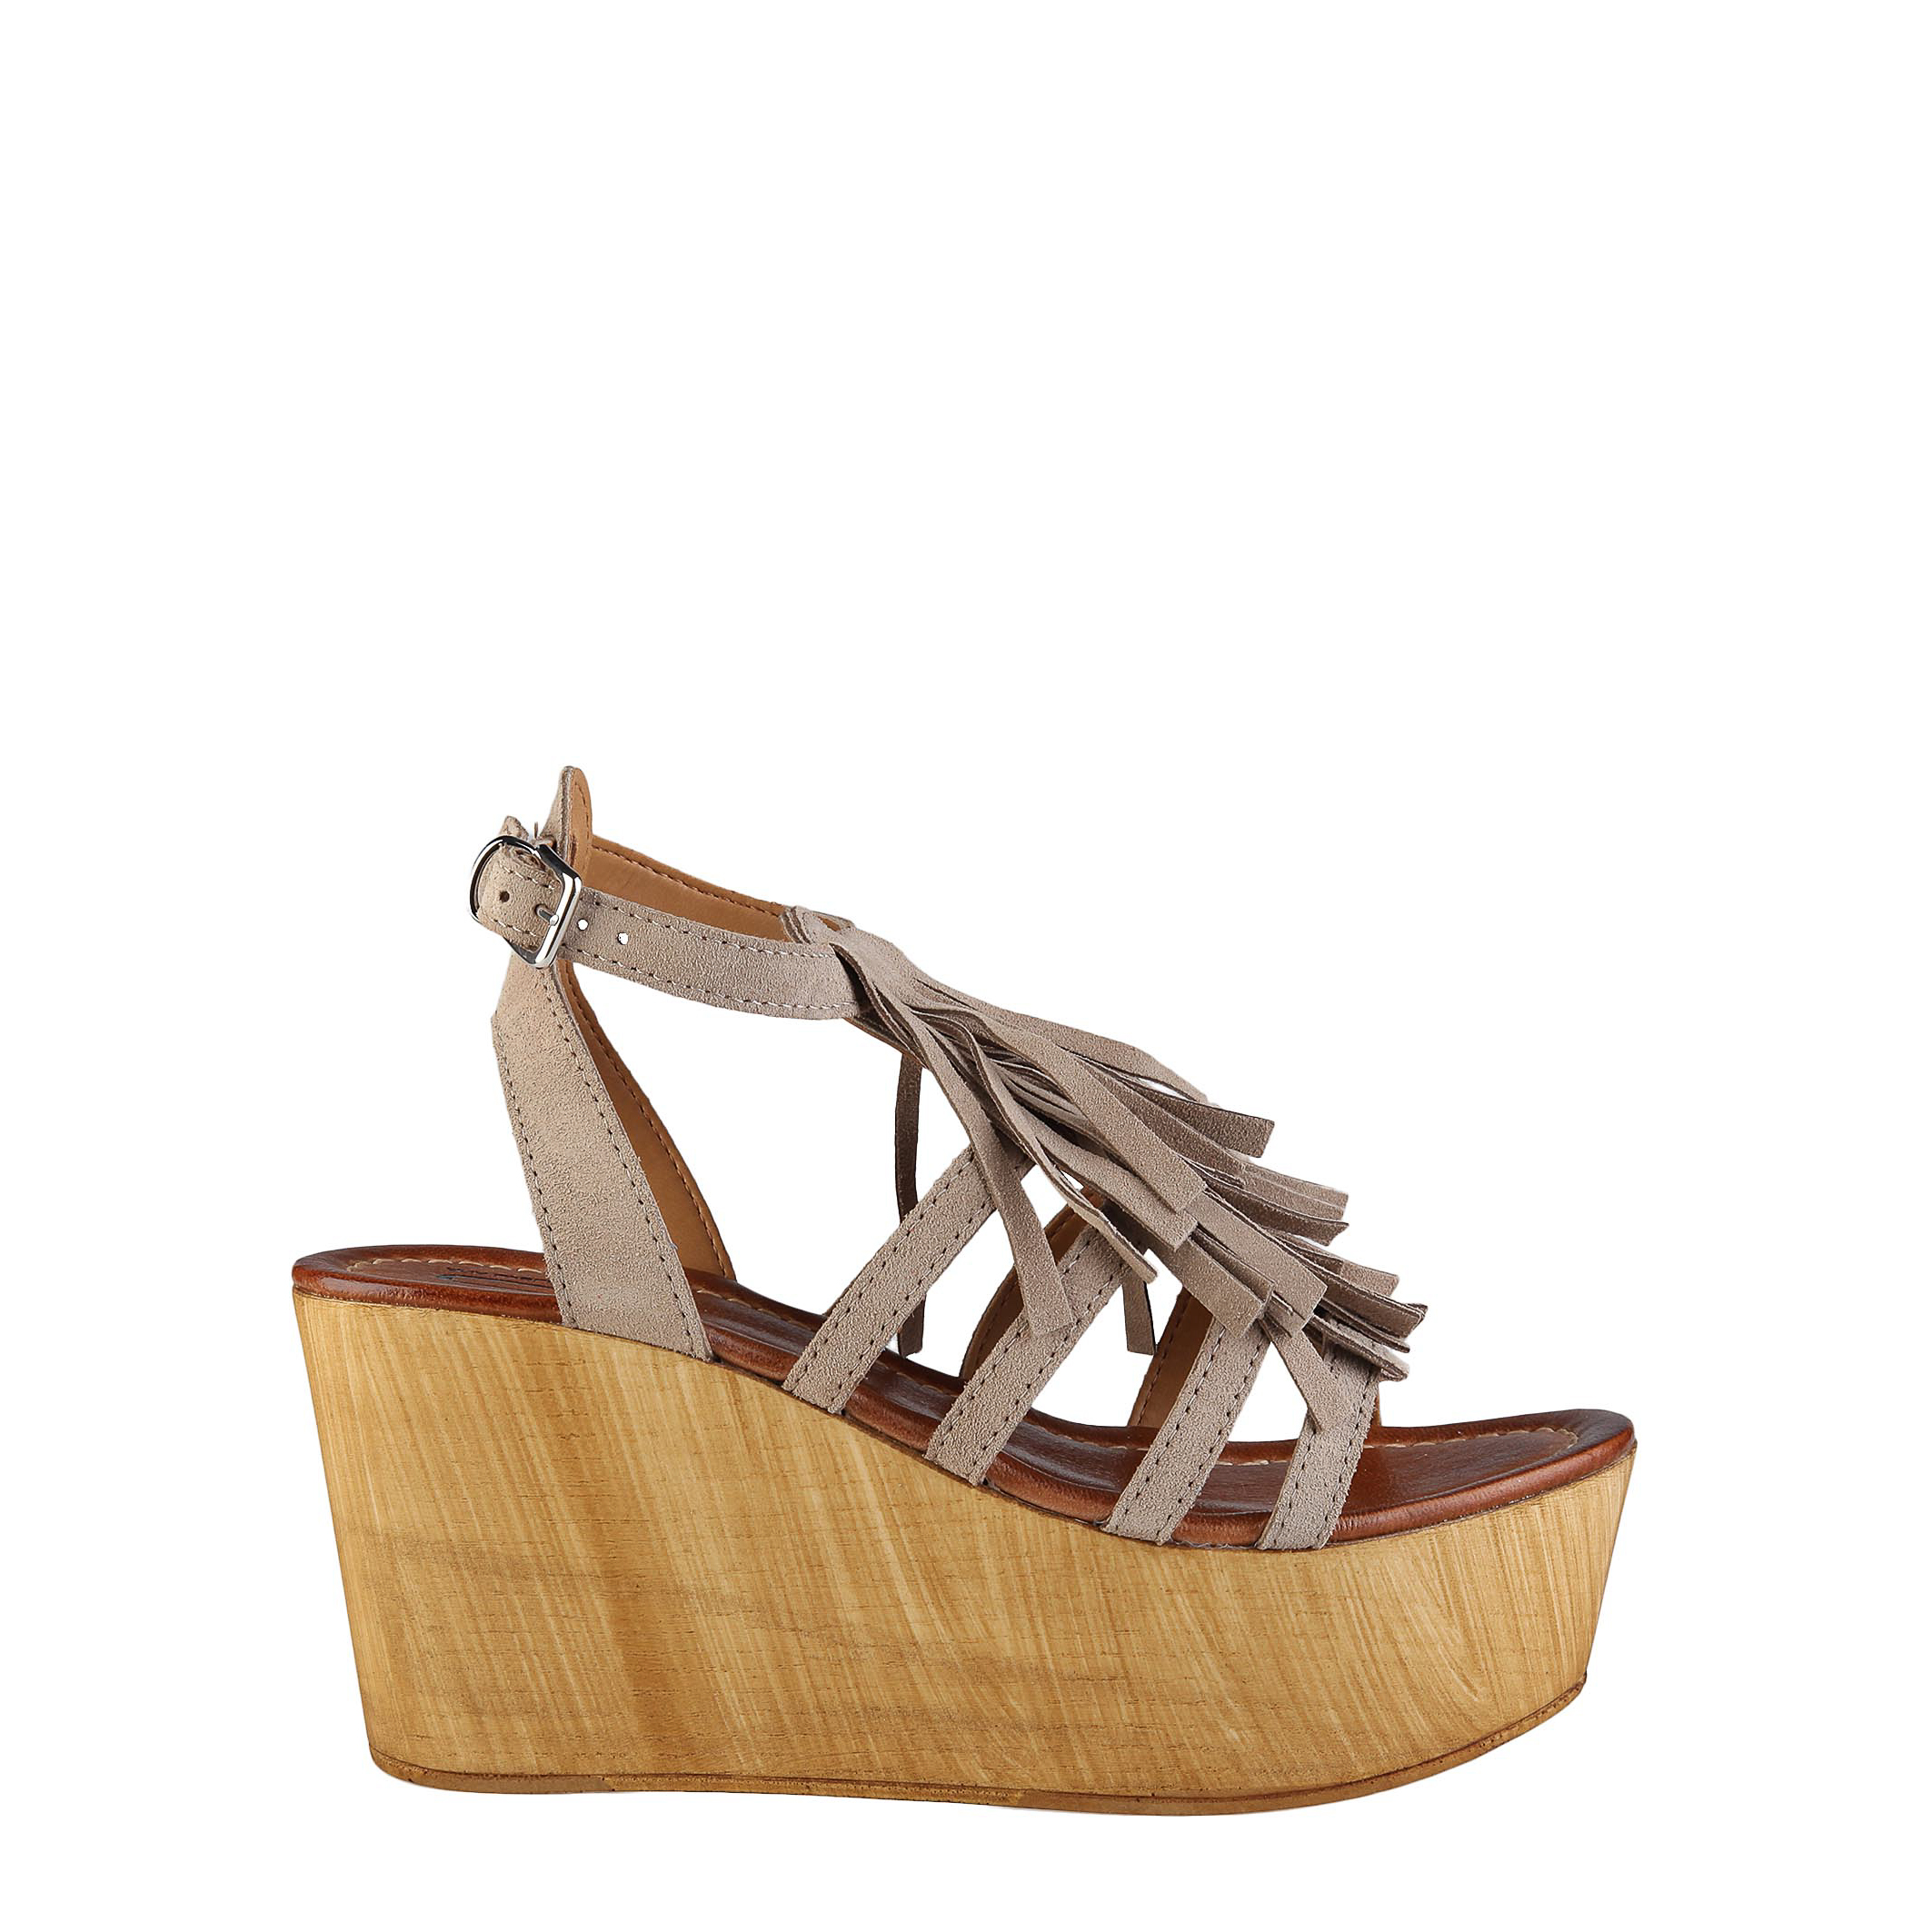 cb81206a7 Wedges Archives - Brands Store - Fashion Store